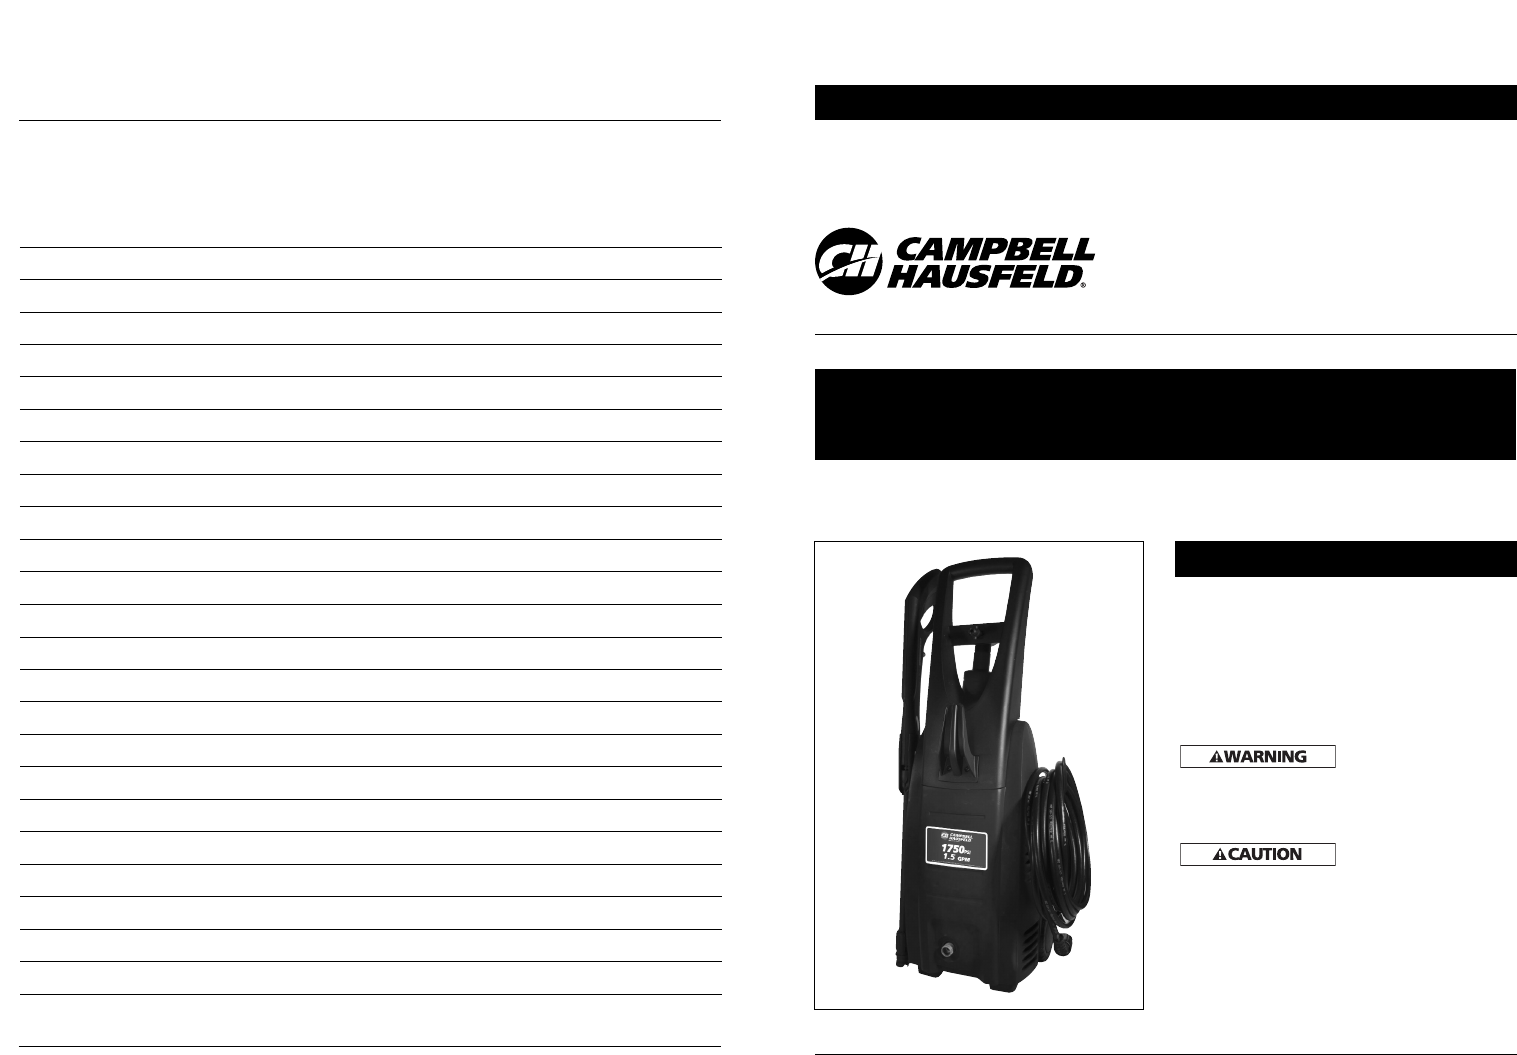 Campbell Hausfeld Pressure Washer Pw1750 User Guide